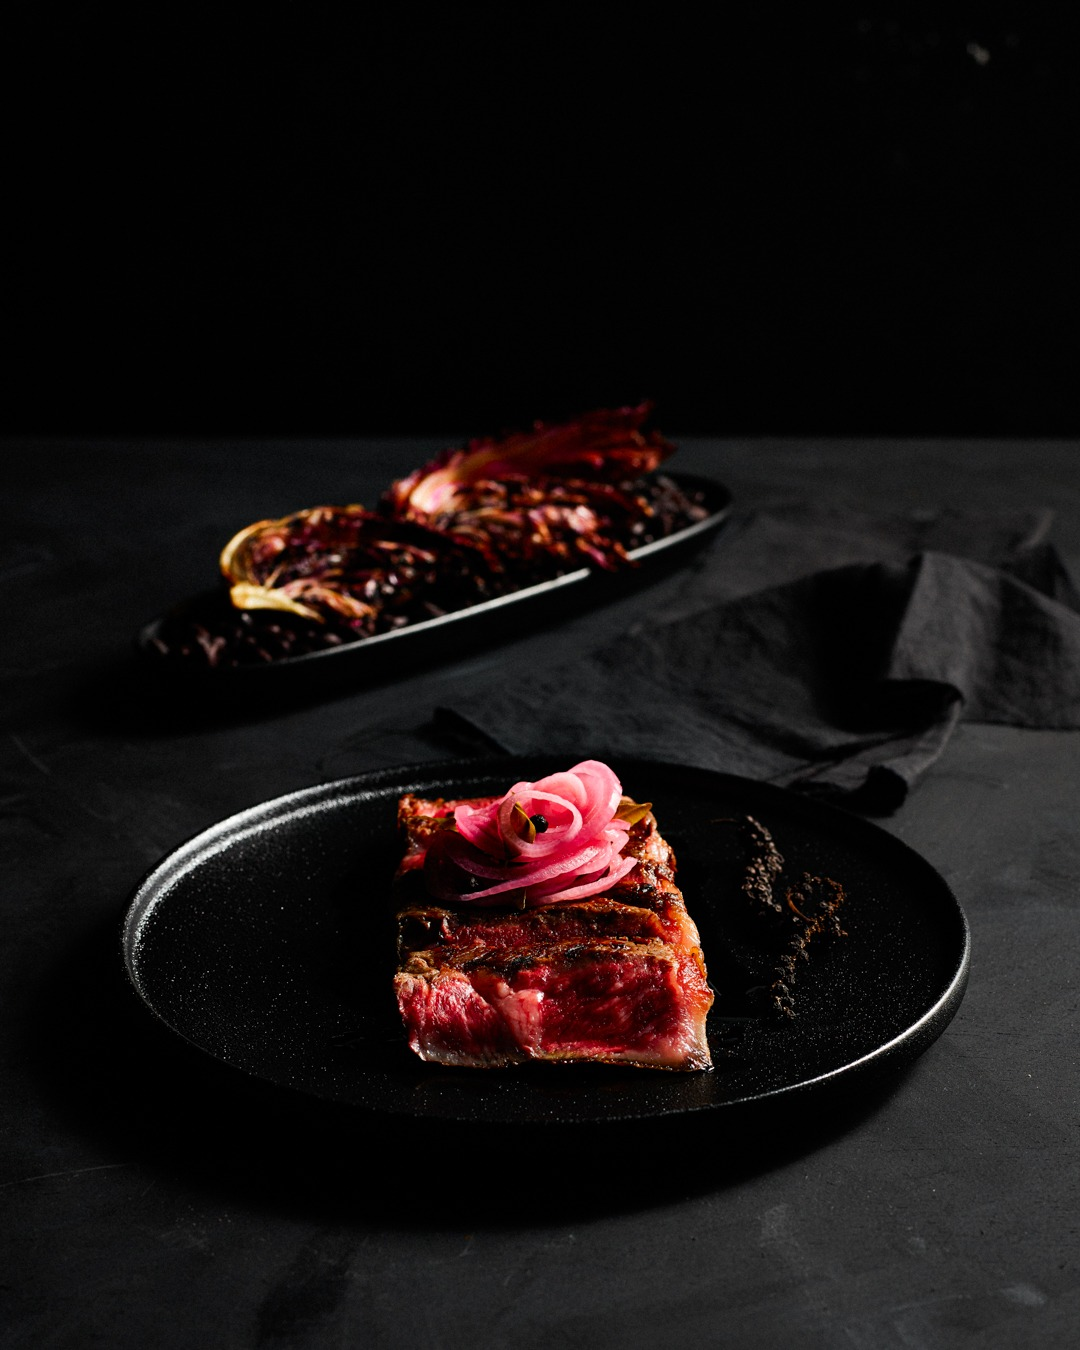 SEARED WAGYU STRIPLOIN WITH GRILLED TREVISO